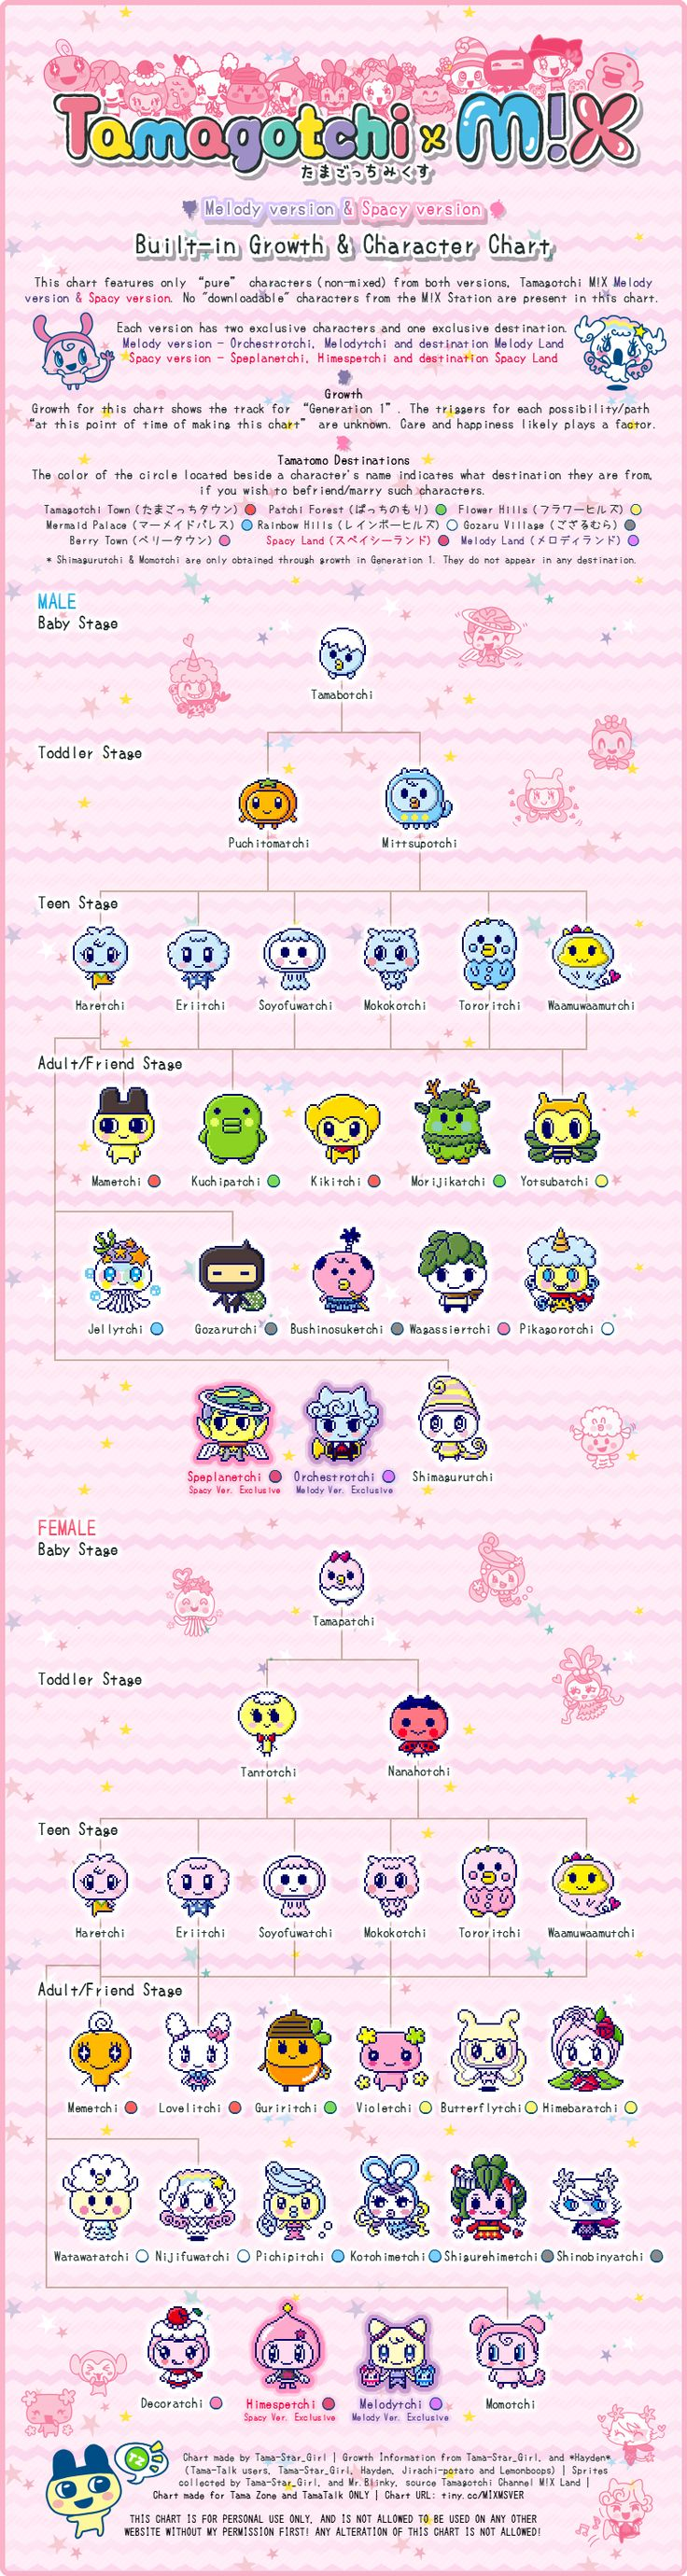 Tamagotchi M!X Melody M!X version & Spacy M!X version Growth & Character Chart - posted in Tamagotchi Tips and Tricks:   *Note, the official Tamagotchi M!X guide book will be out the 26th this month. The guide book will possibly reveal the requirements for growth.